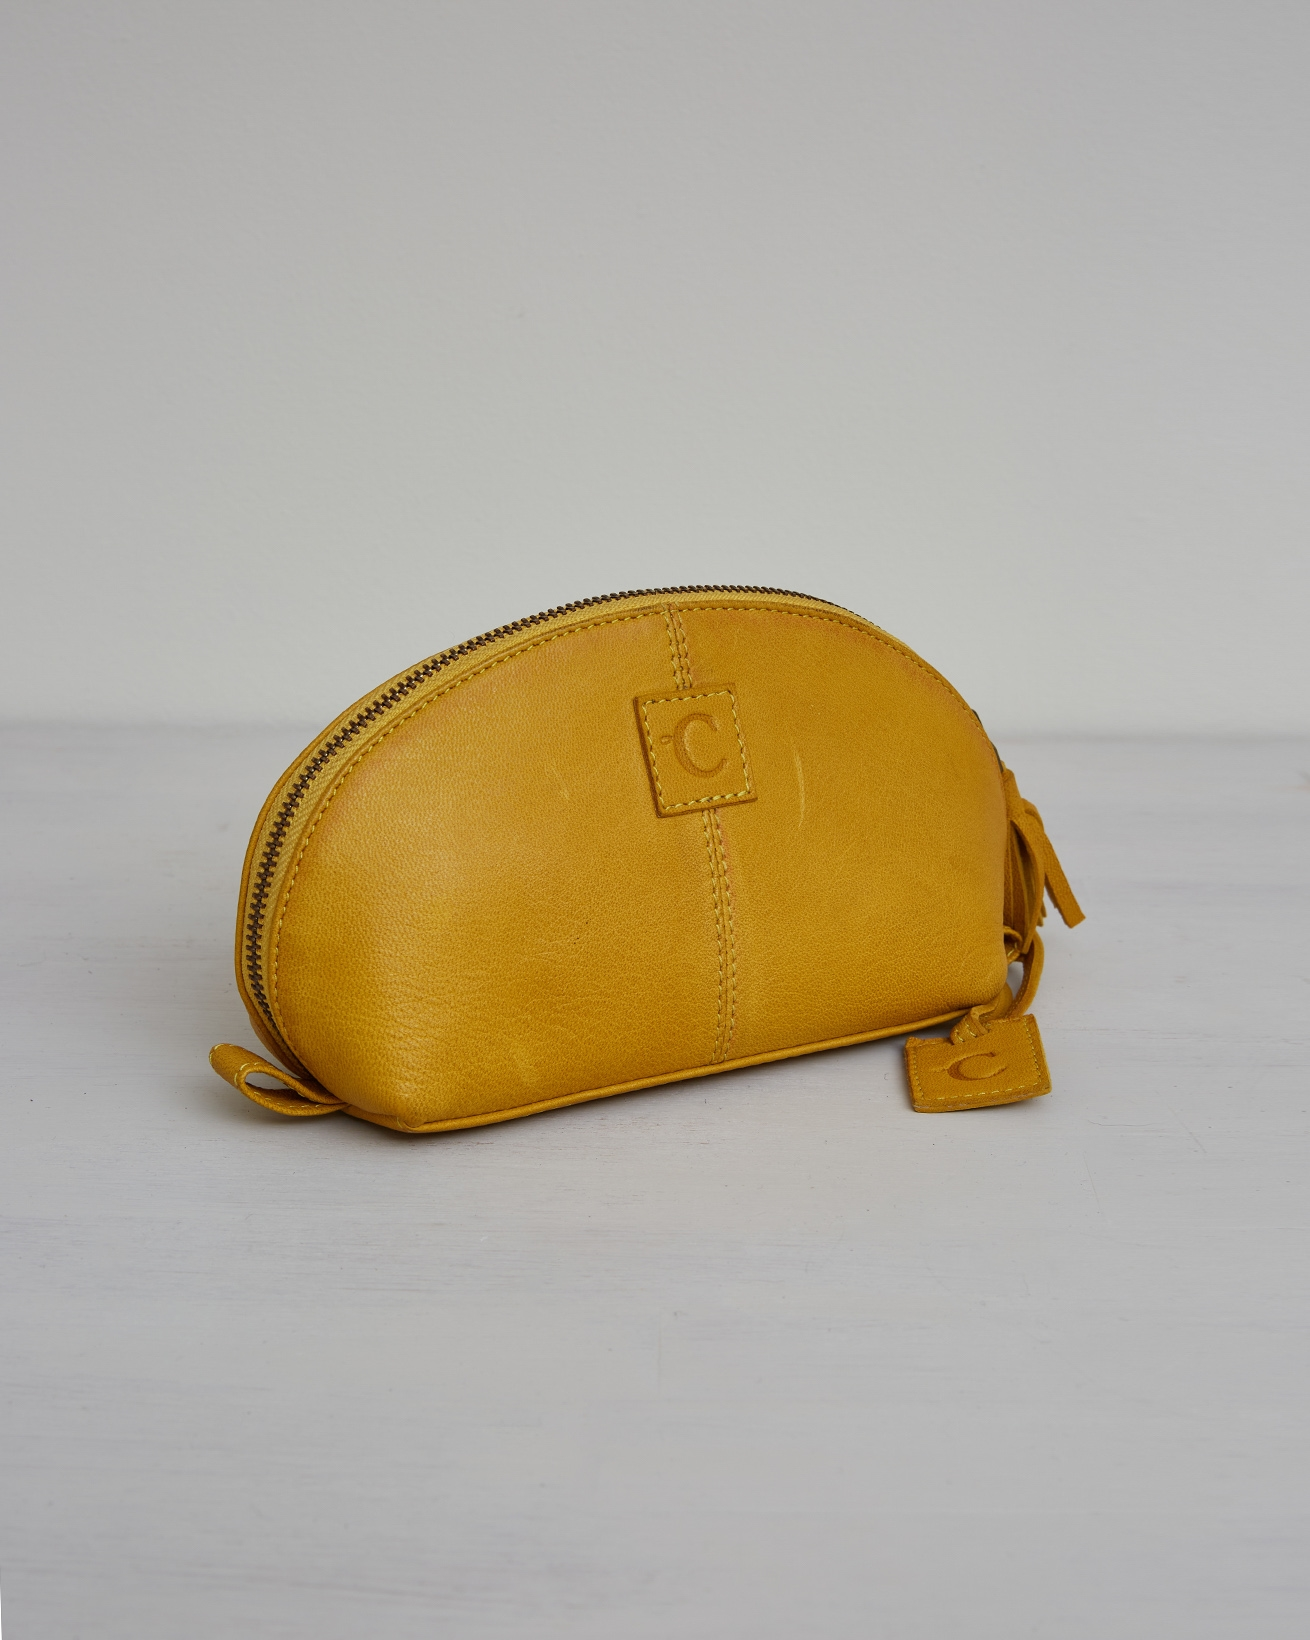 Veg Tan Leather Curved Zip Pouch - One/Size - Gorse - 2423